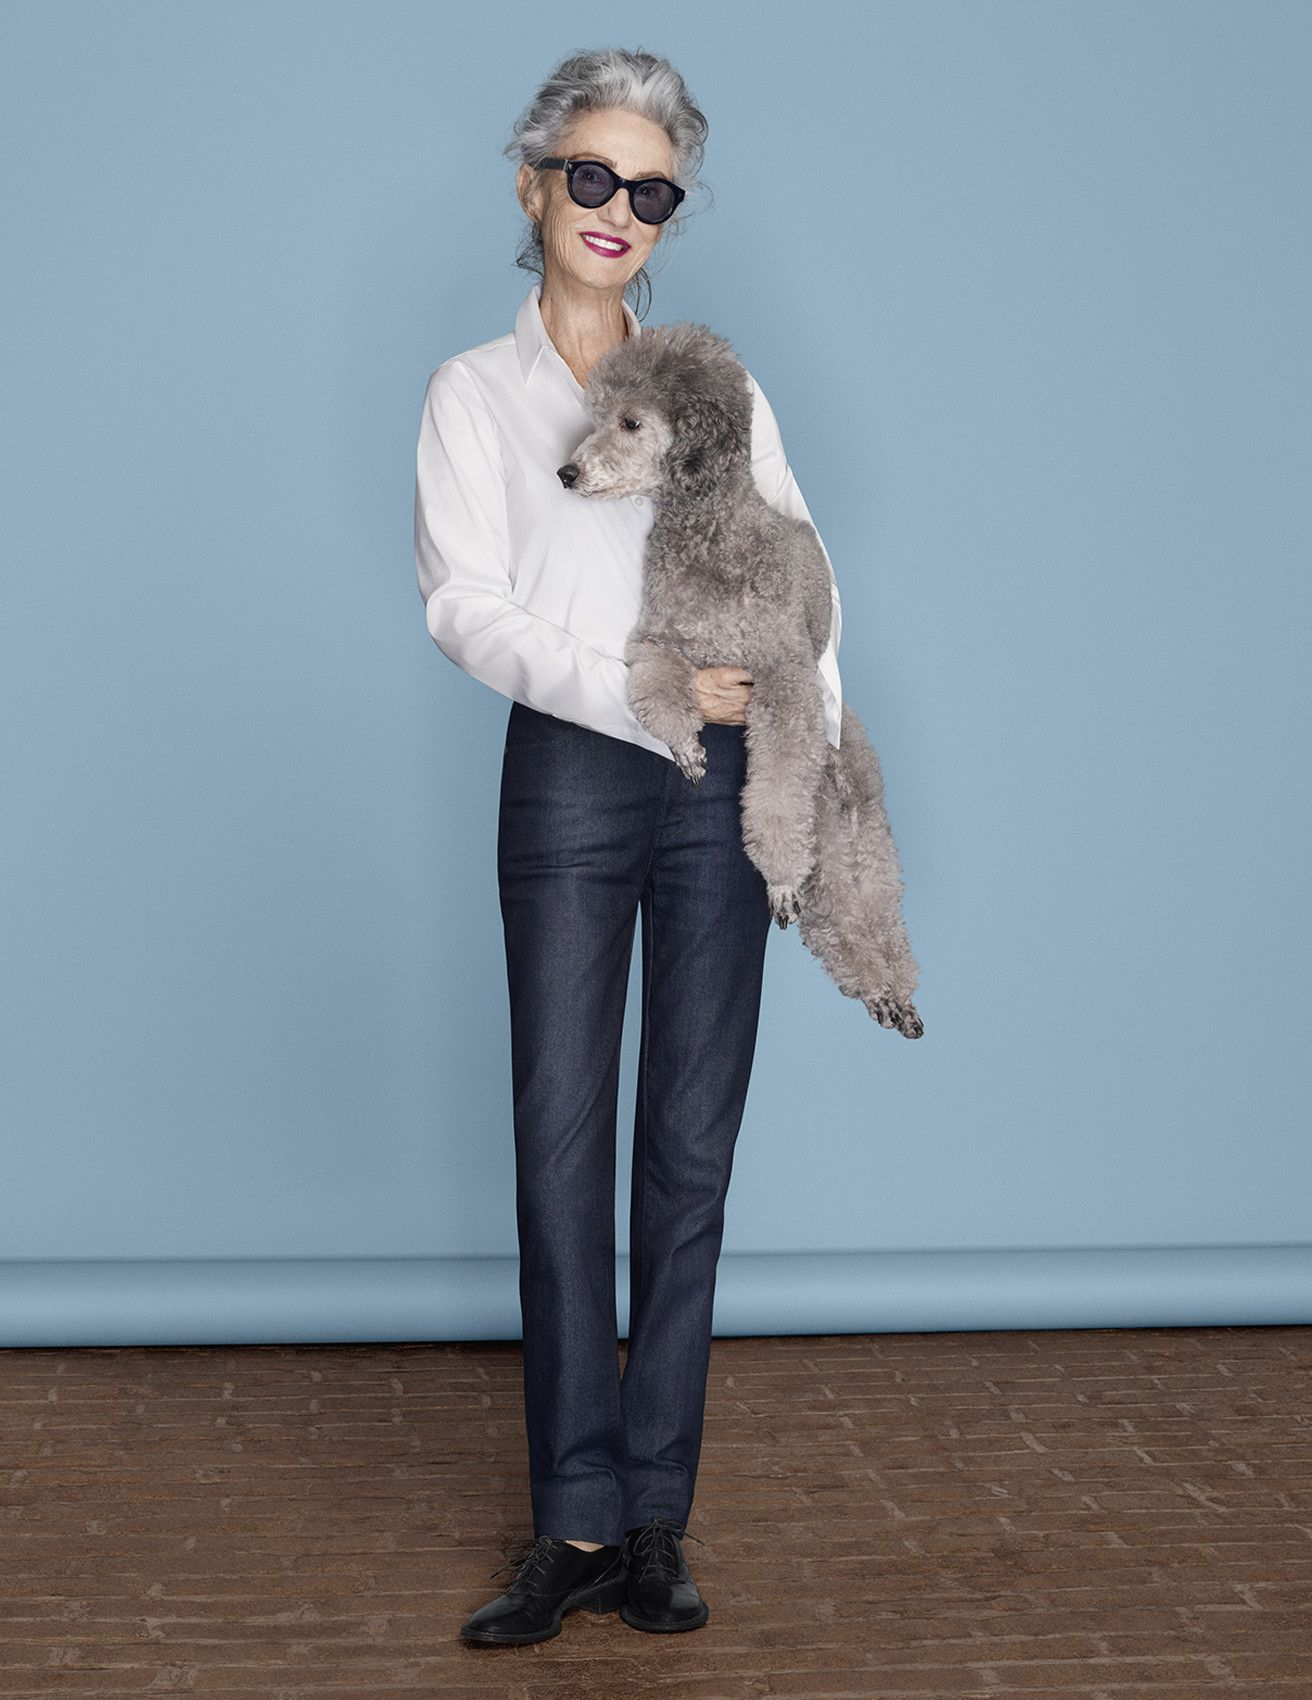 Linda Rodin, 60 years living a fashion life in jeans Not Only Twenty, over 50 fashion denim